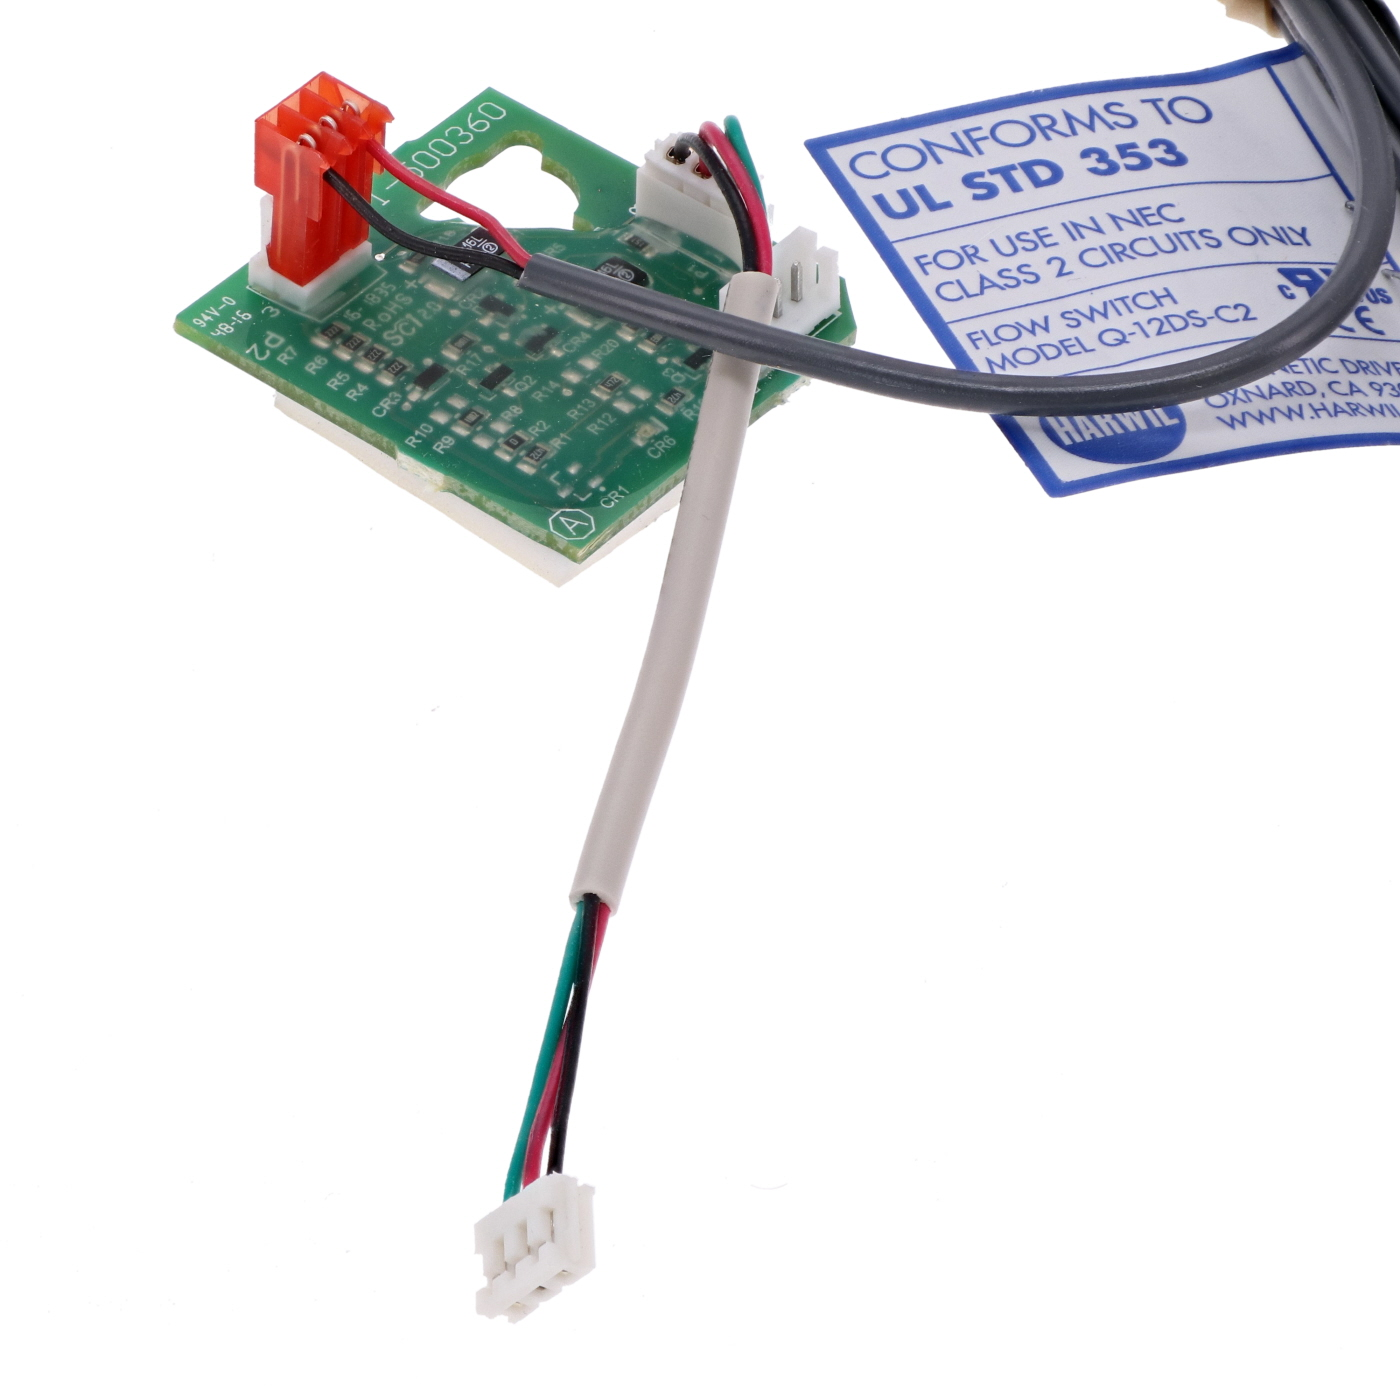 Flow switch replacement kit for Gecko Control Systems